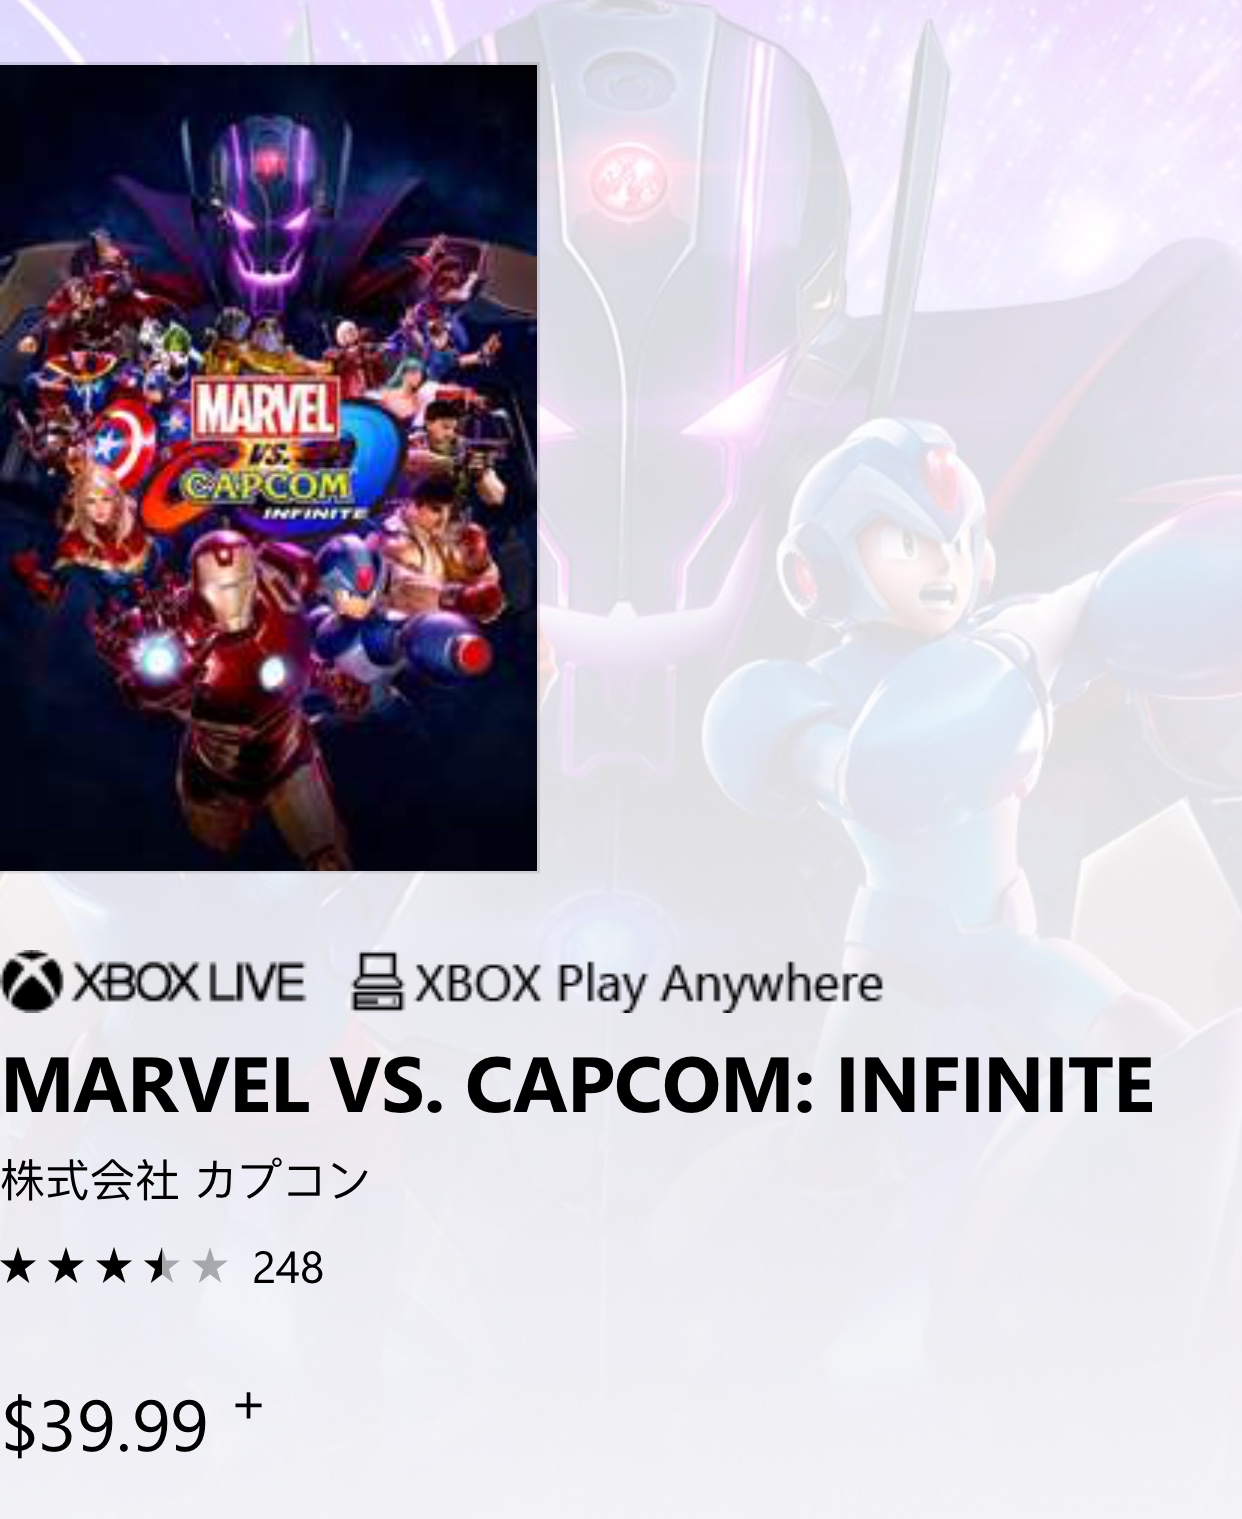 Marvel vs Capcom: Infinite is now a Play Anywhere title